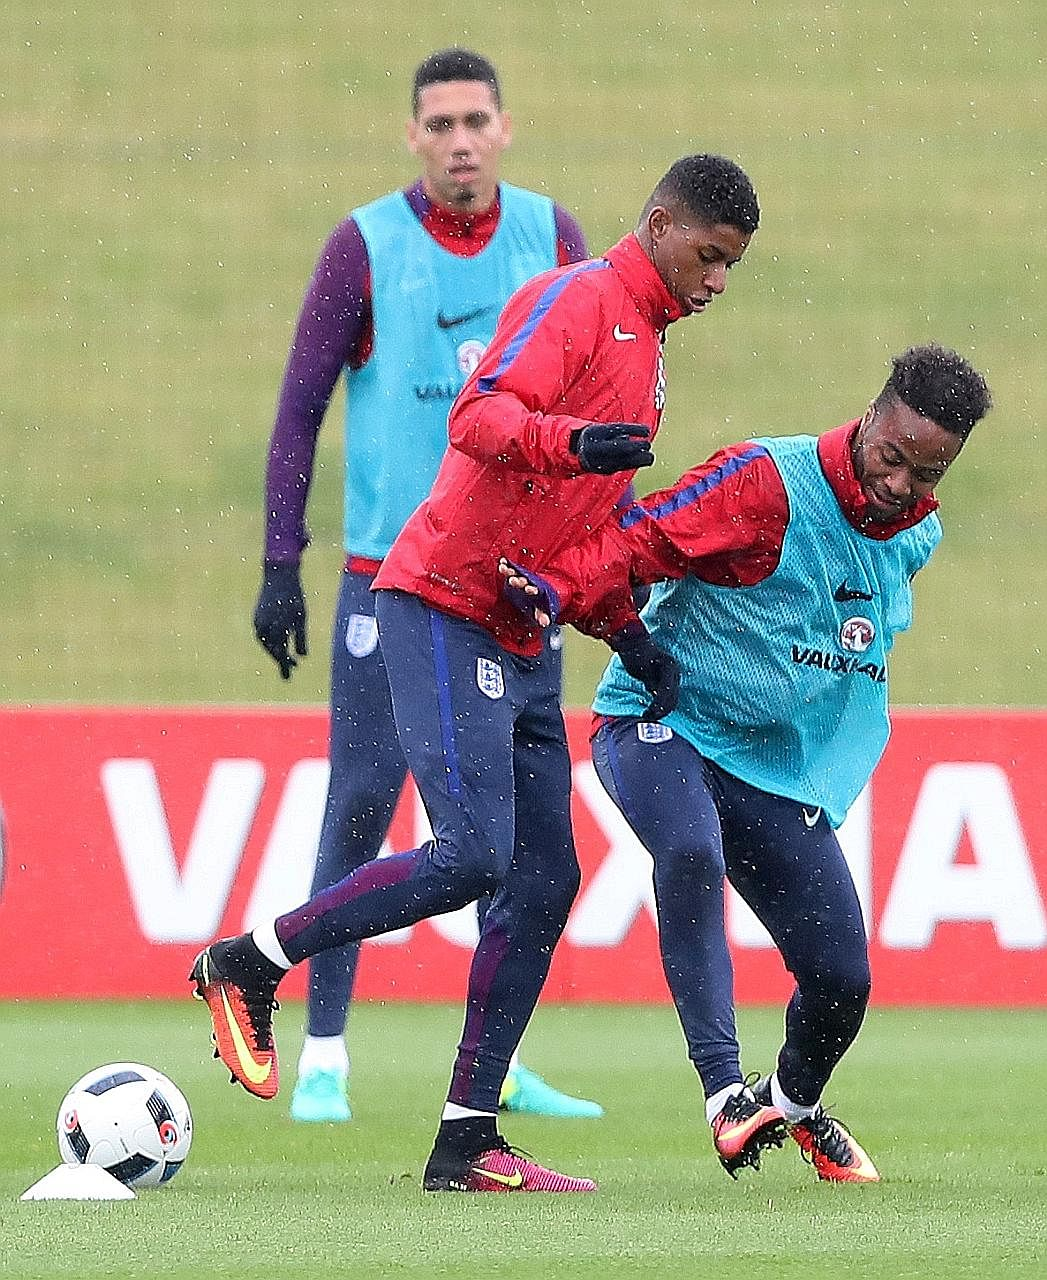 Marcus Rashford (centre) keeping the ball away from Raheem Sterling during England's training session as Chris Smalling watches on.